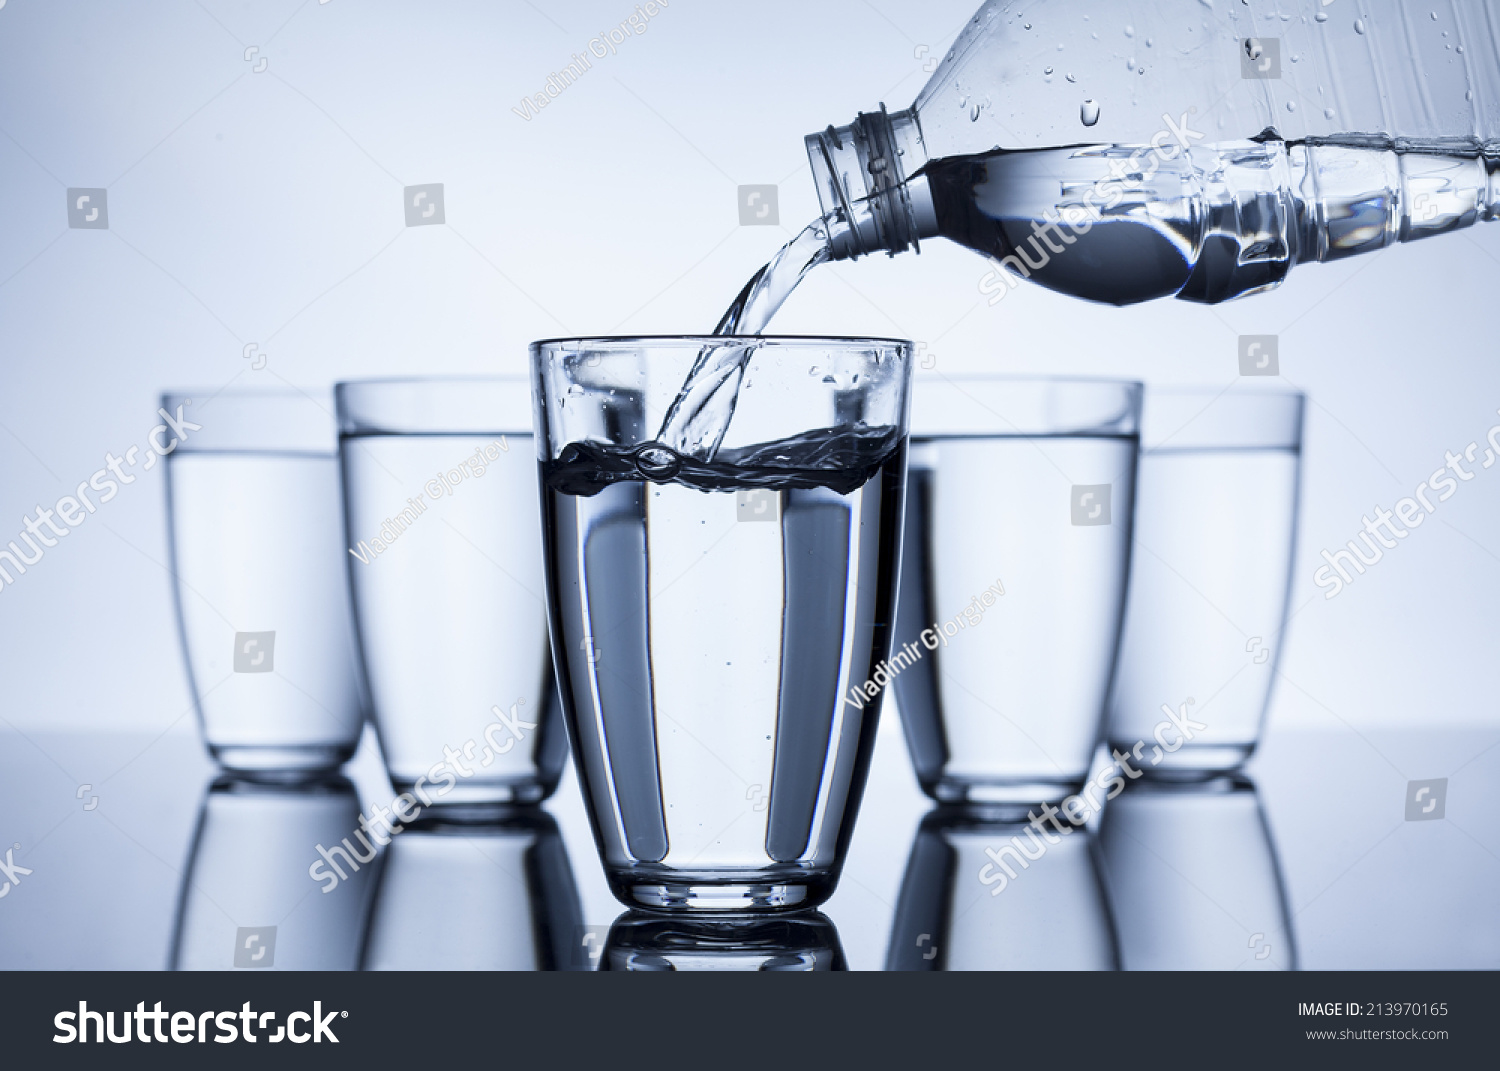 plastic bottle that fill water group stock photo 213970165